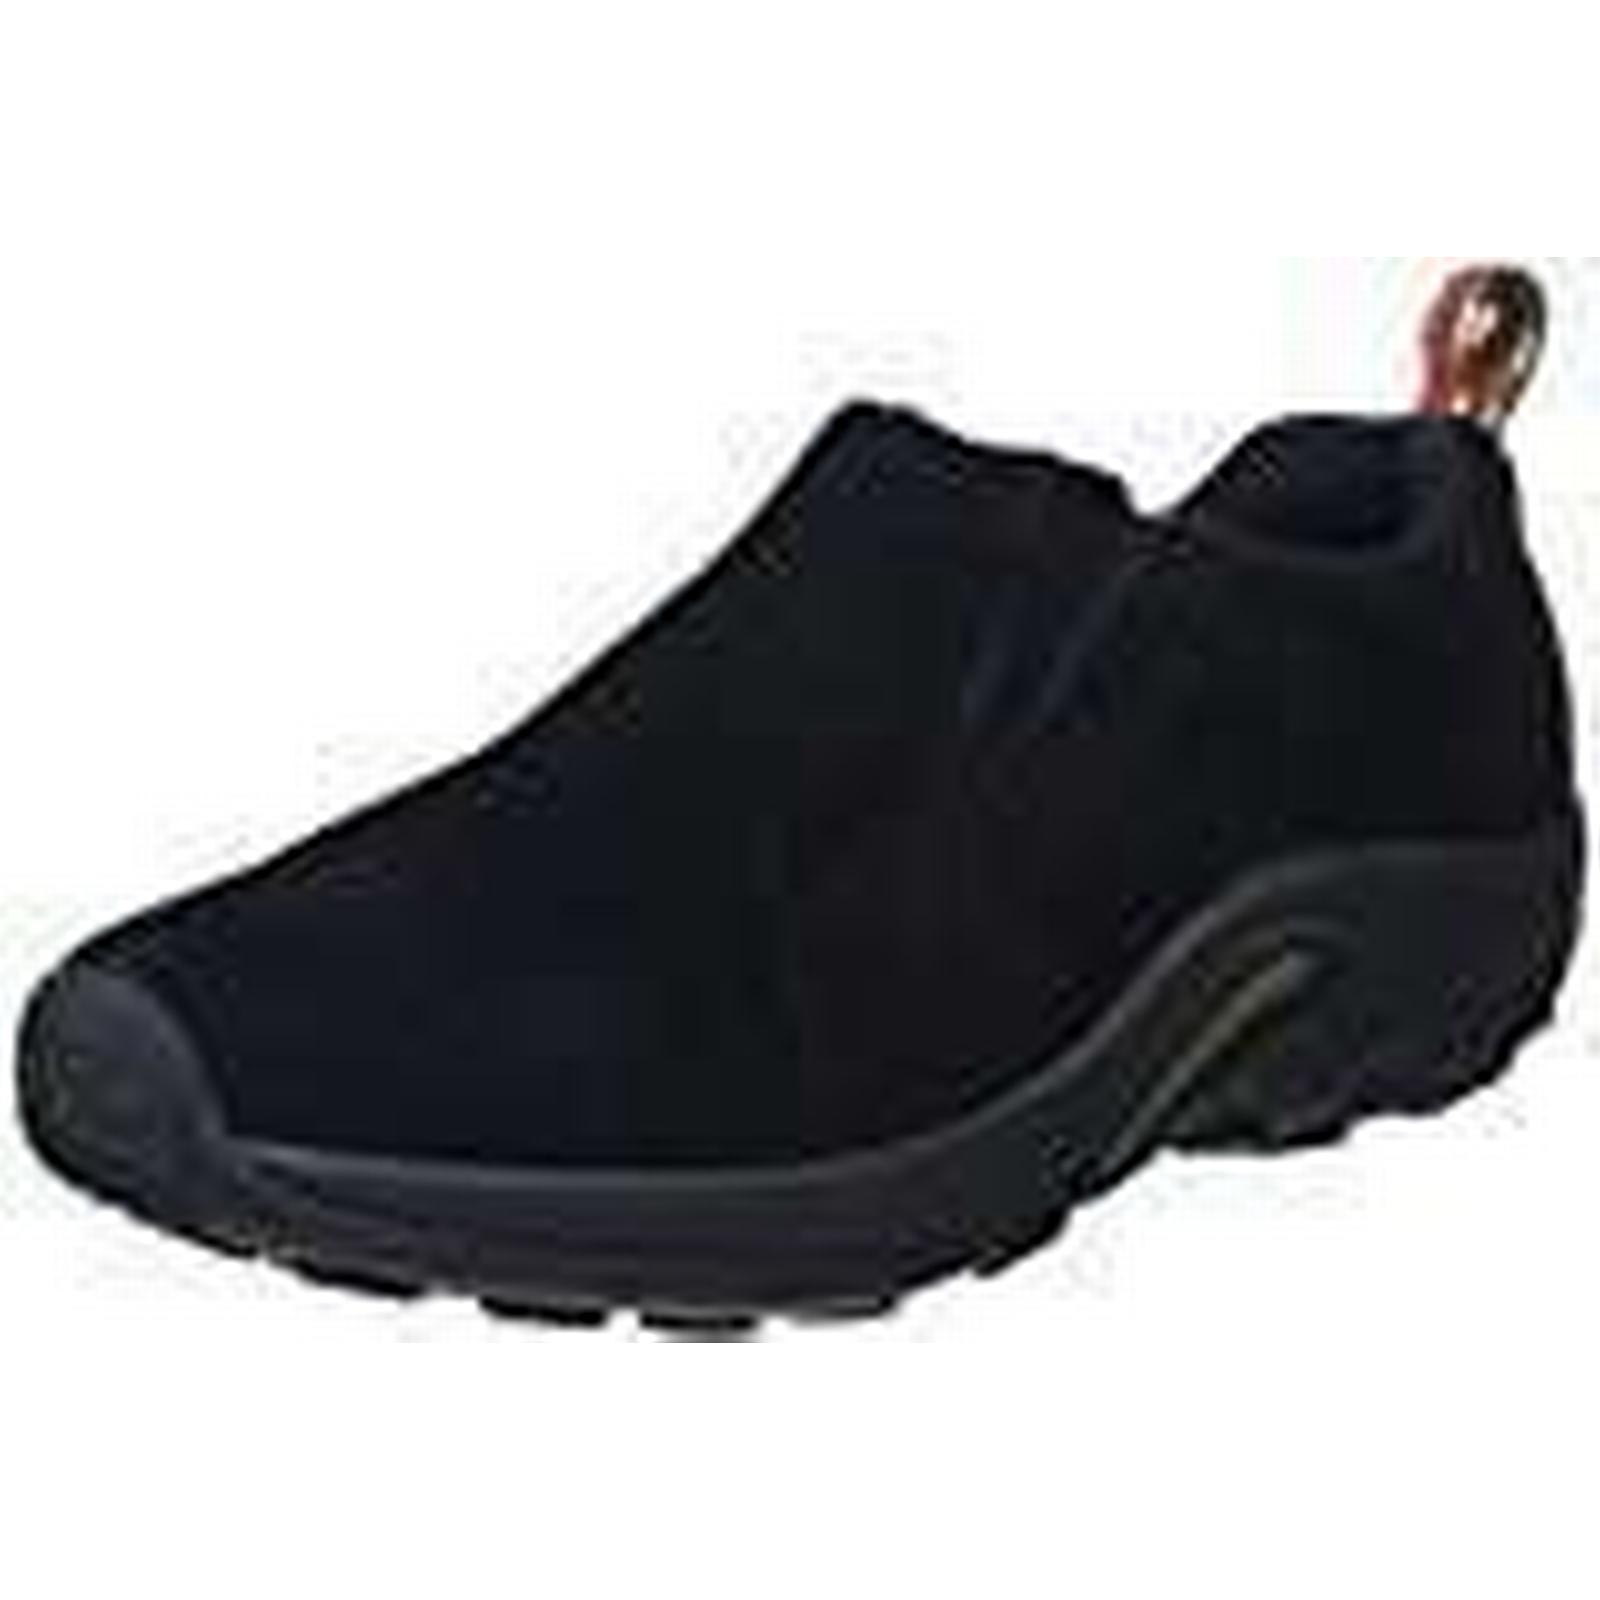 Merrell Men's Jungle Moc Slip-on UK Sneakers, Black (Midnight), 8.5 UK Slip-on (43 EU) 0ee7fd